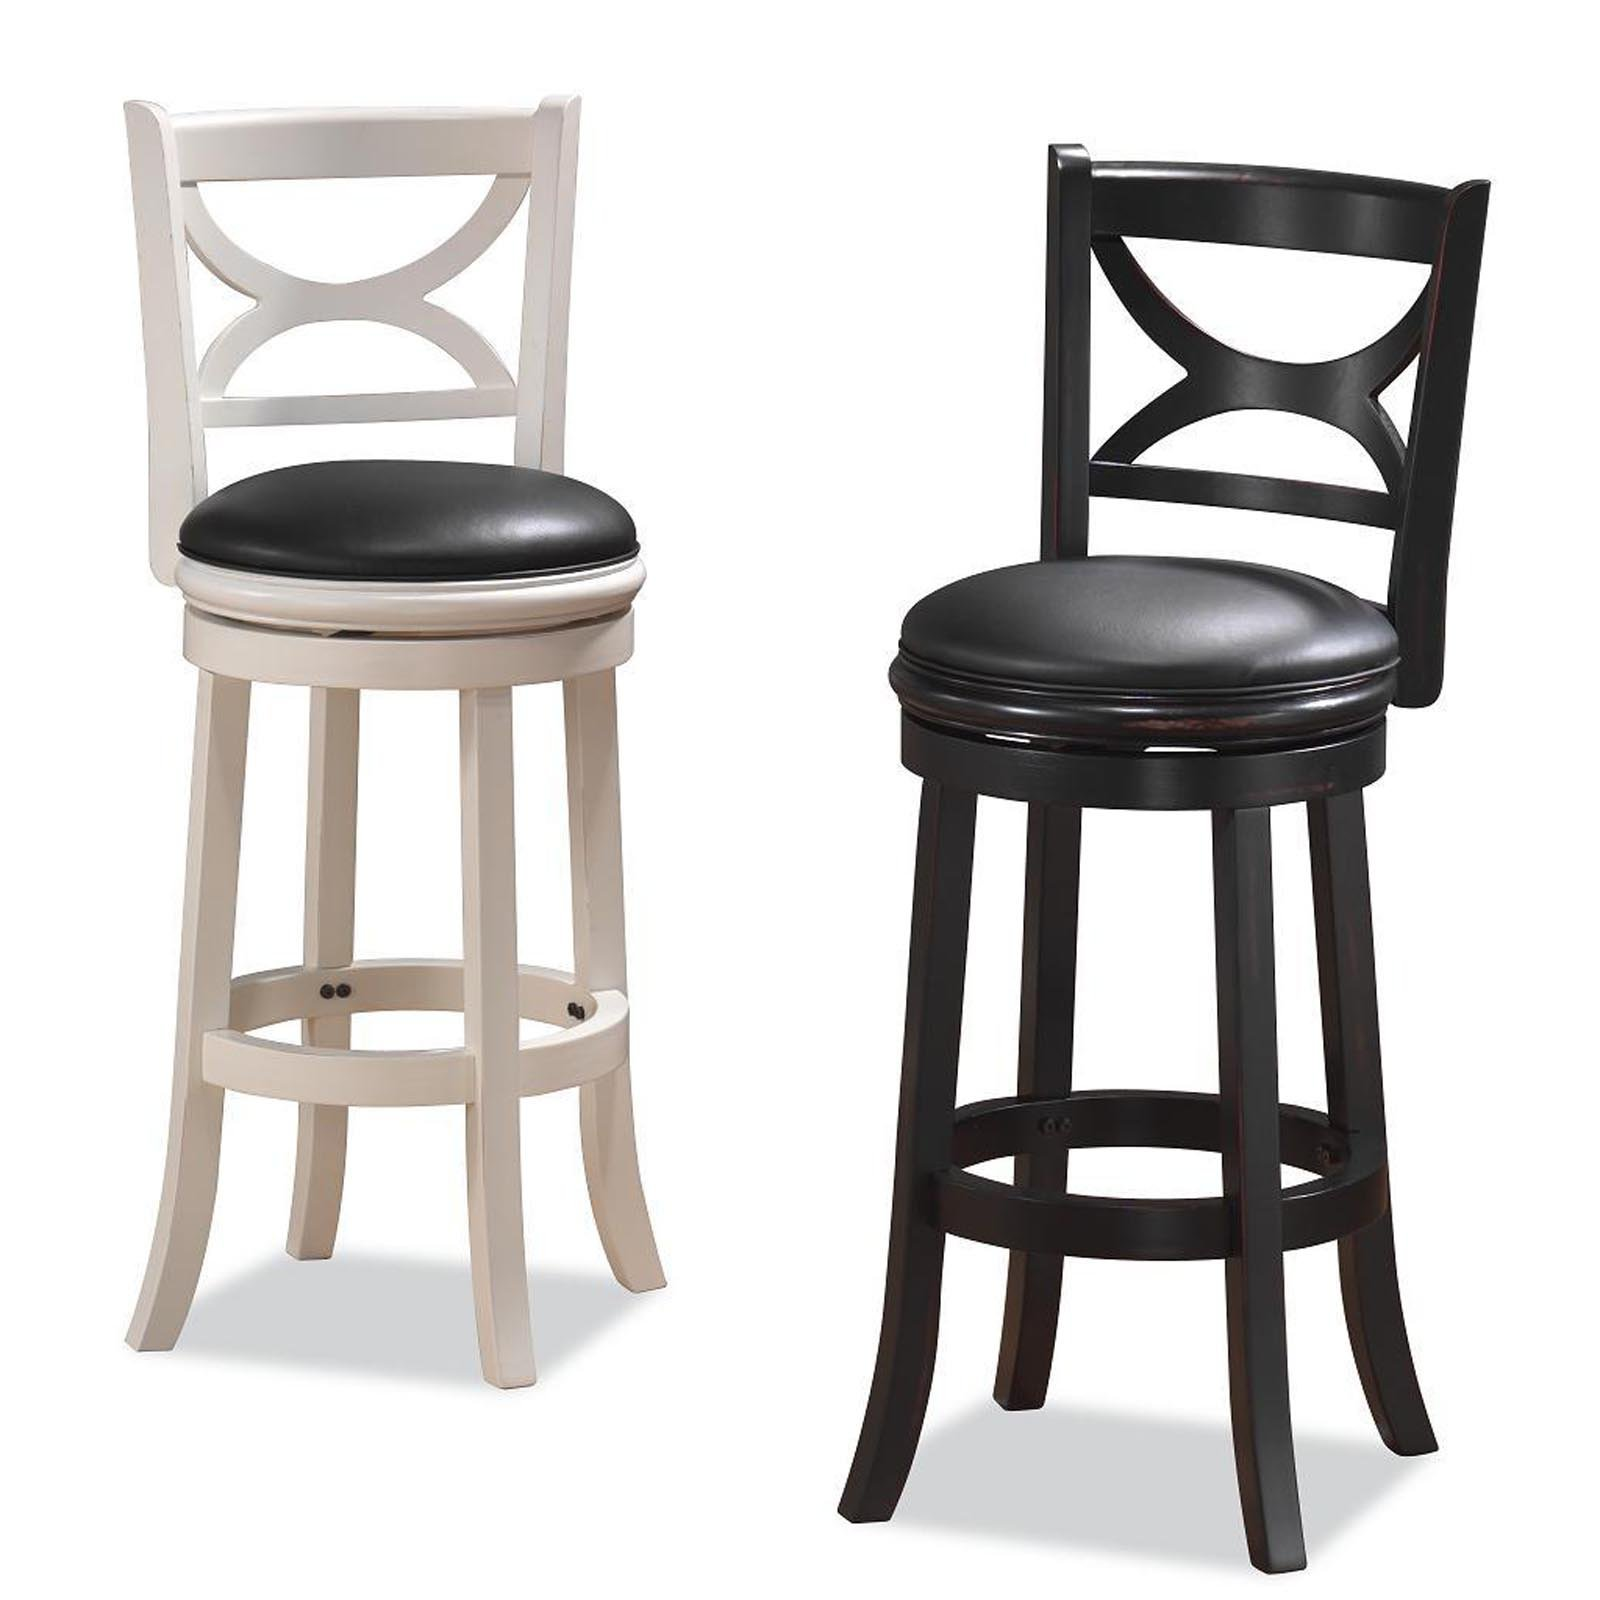 height barstool stool ivory swimsuit with design stools isaac swivel clearance backs counter novelty extraordinary bar